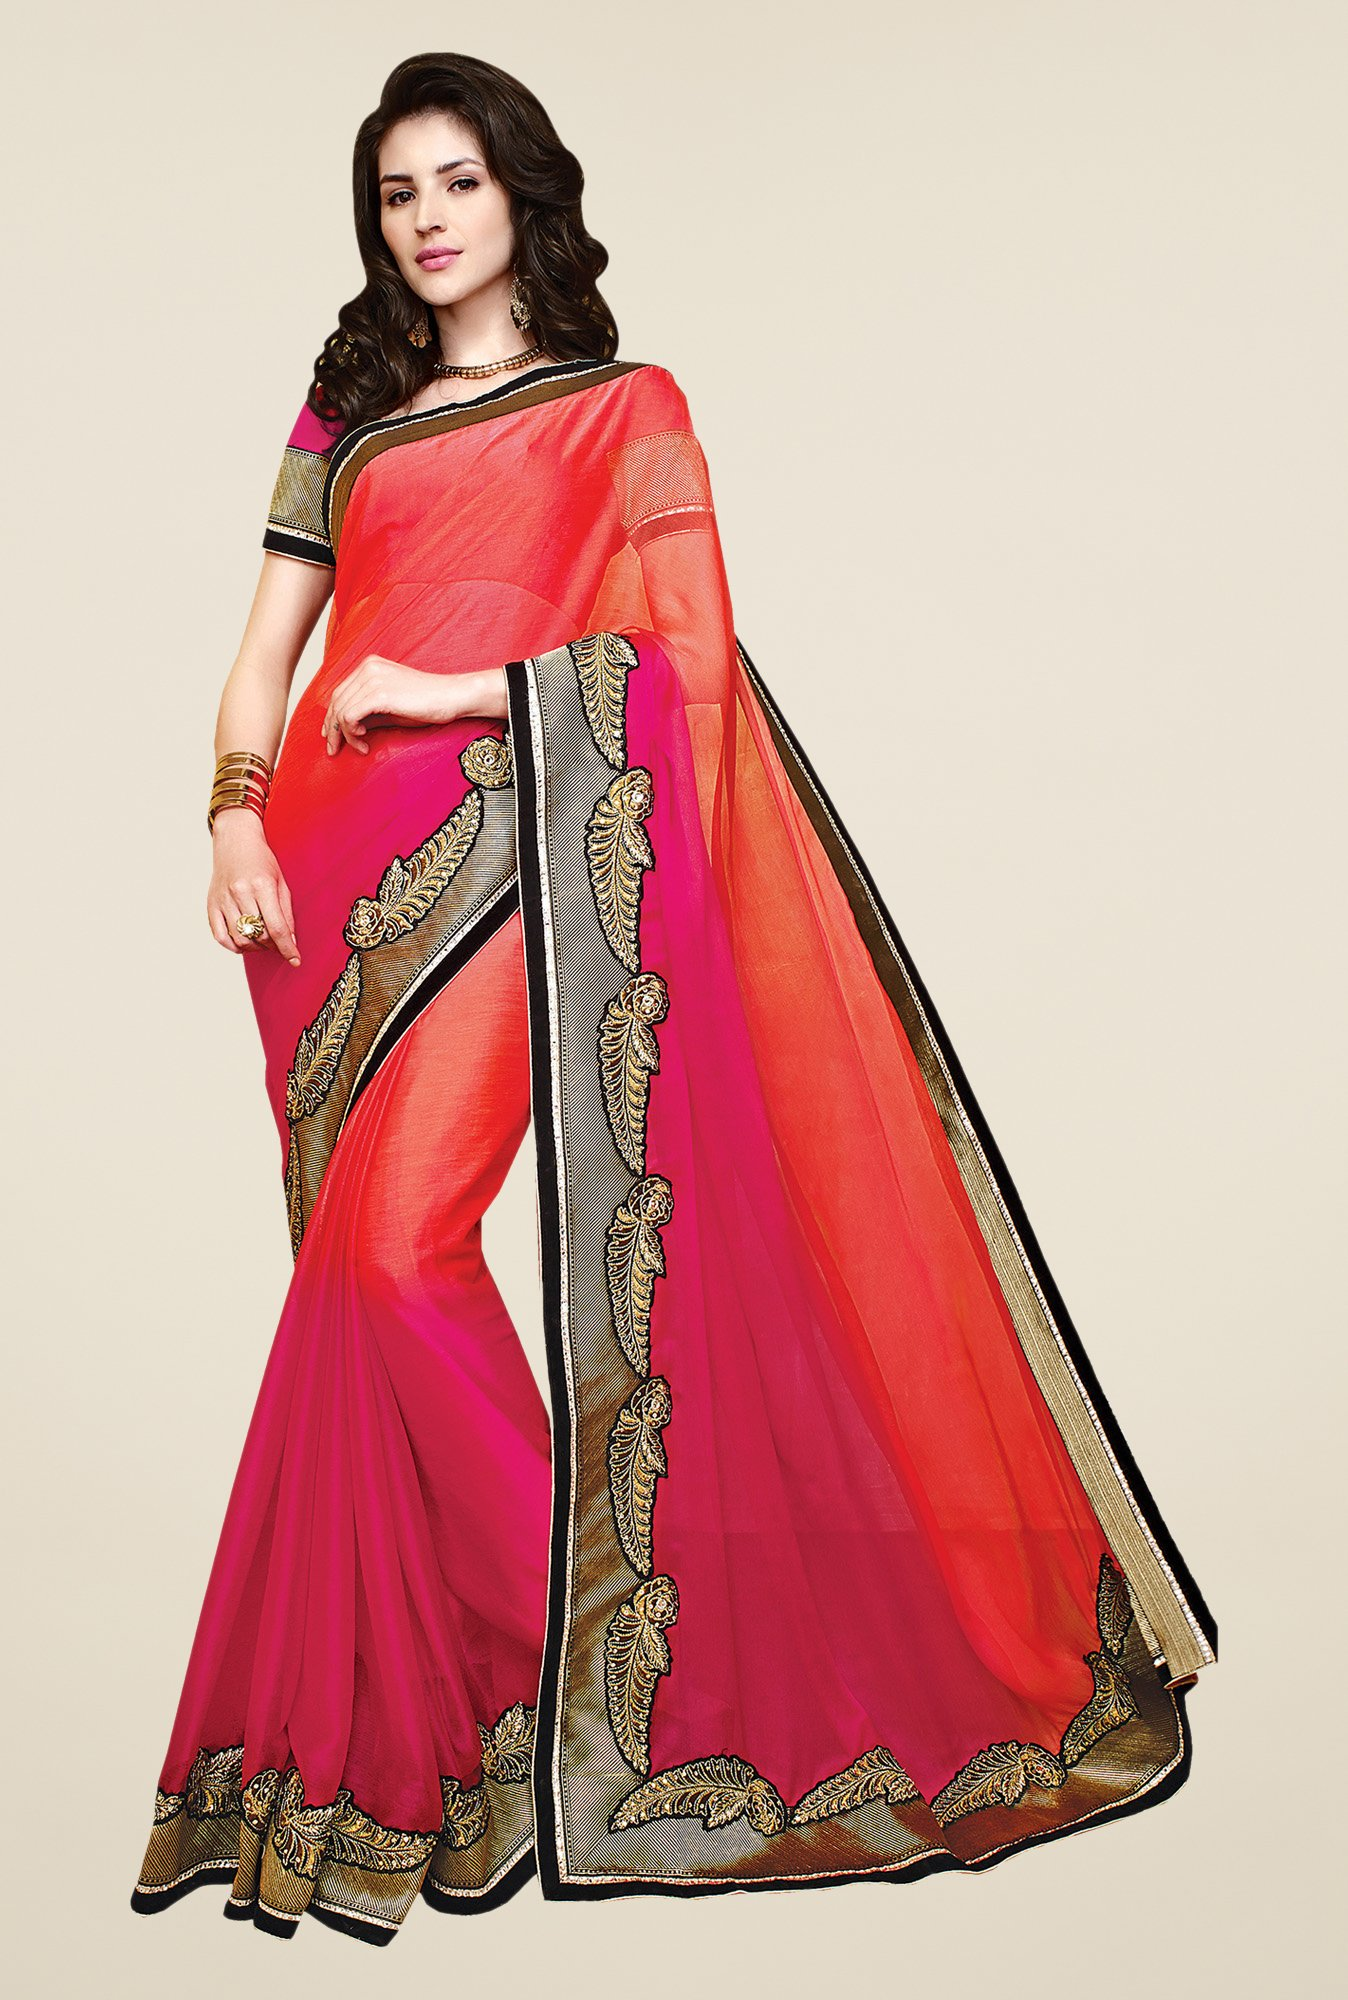 Shonaya Pink & Coral Chiffon Embroidered Saree